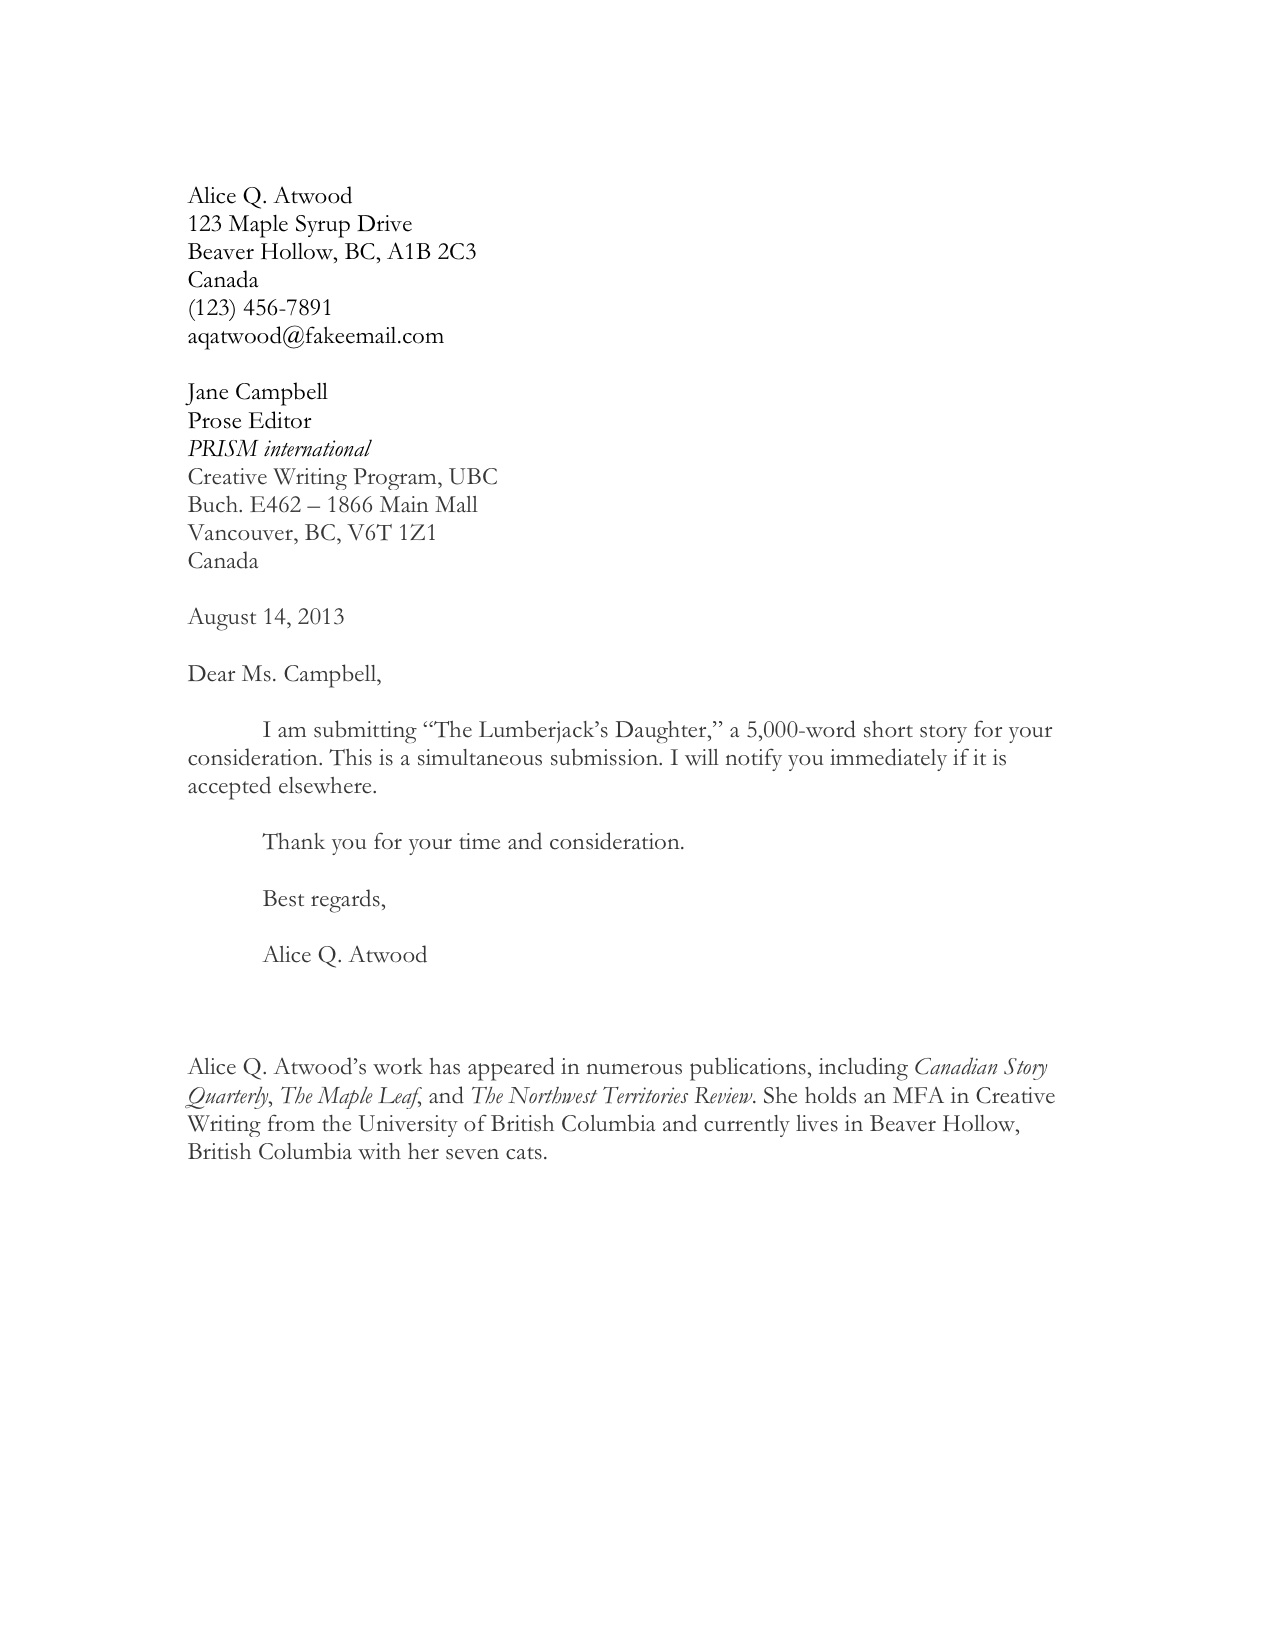 writing a cover letter samples cover letter example prism international 25803 | cover letter example1